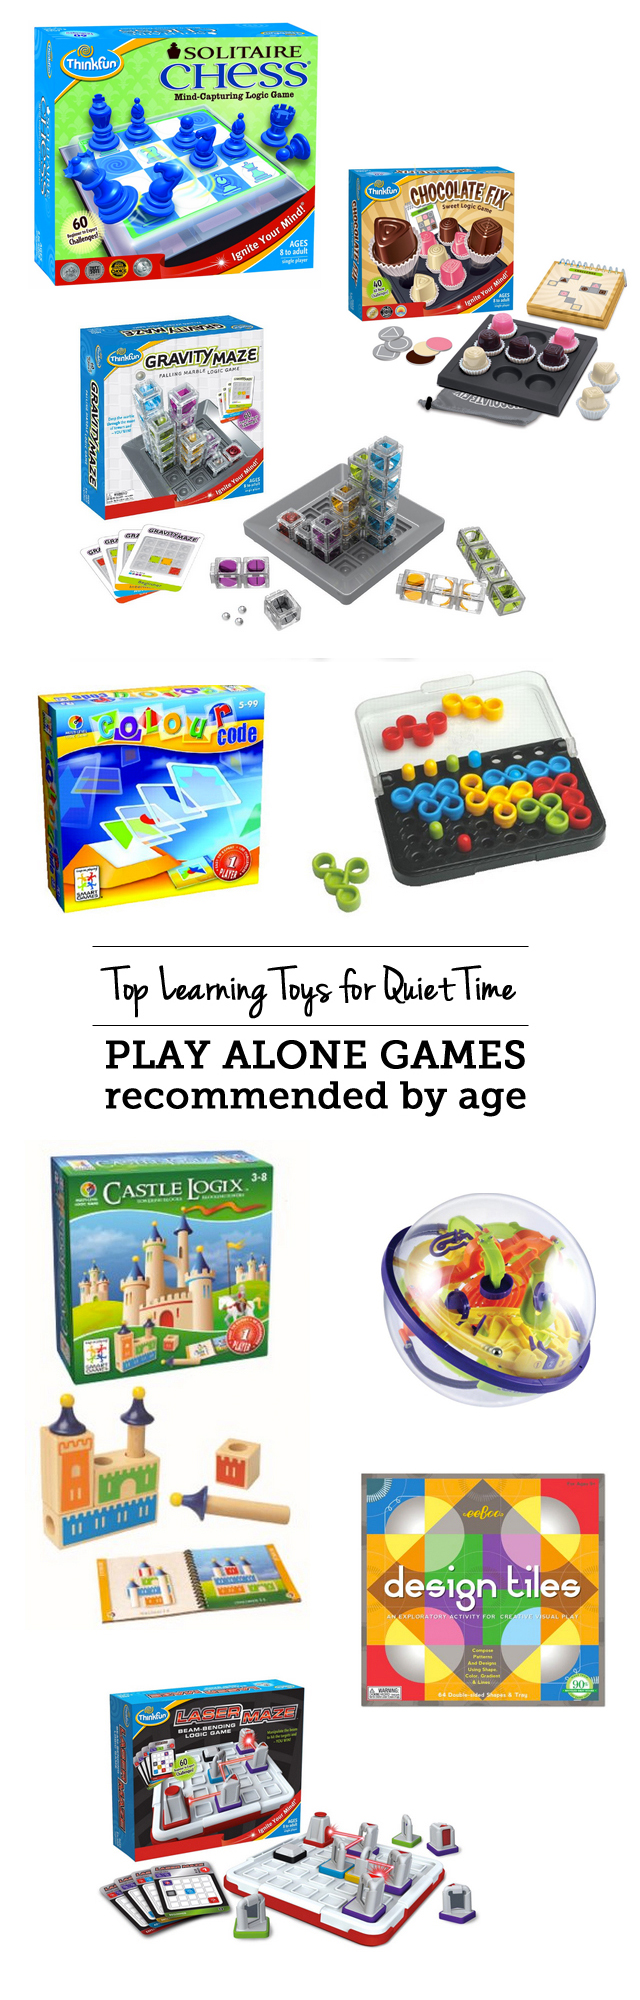 MPMK Gift Guide: Top learning toys for quiet time: play alone games - love that my kids are building brainpower with these while I get stuff done or have one-on-one time with their sibling.